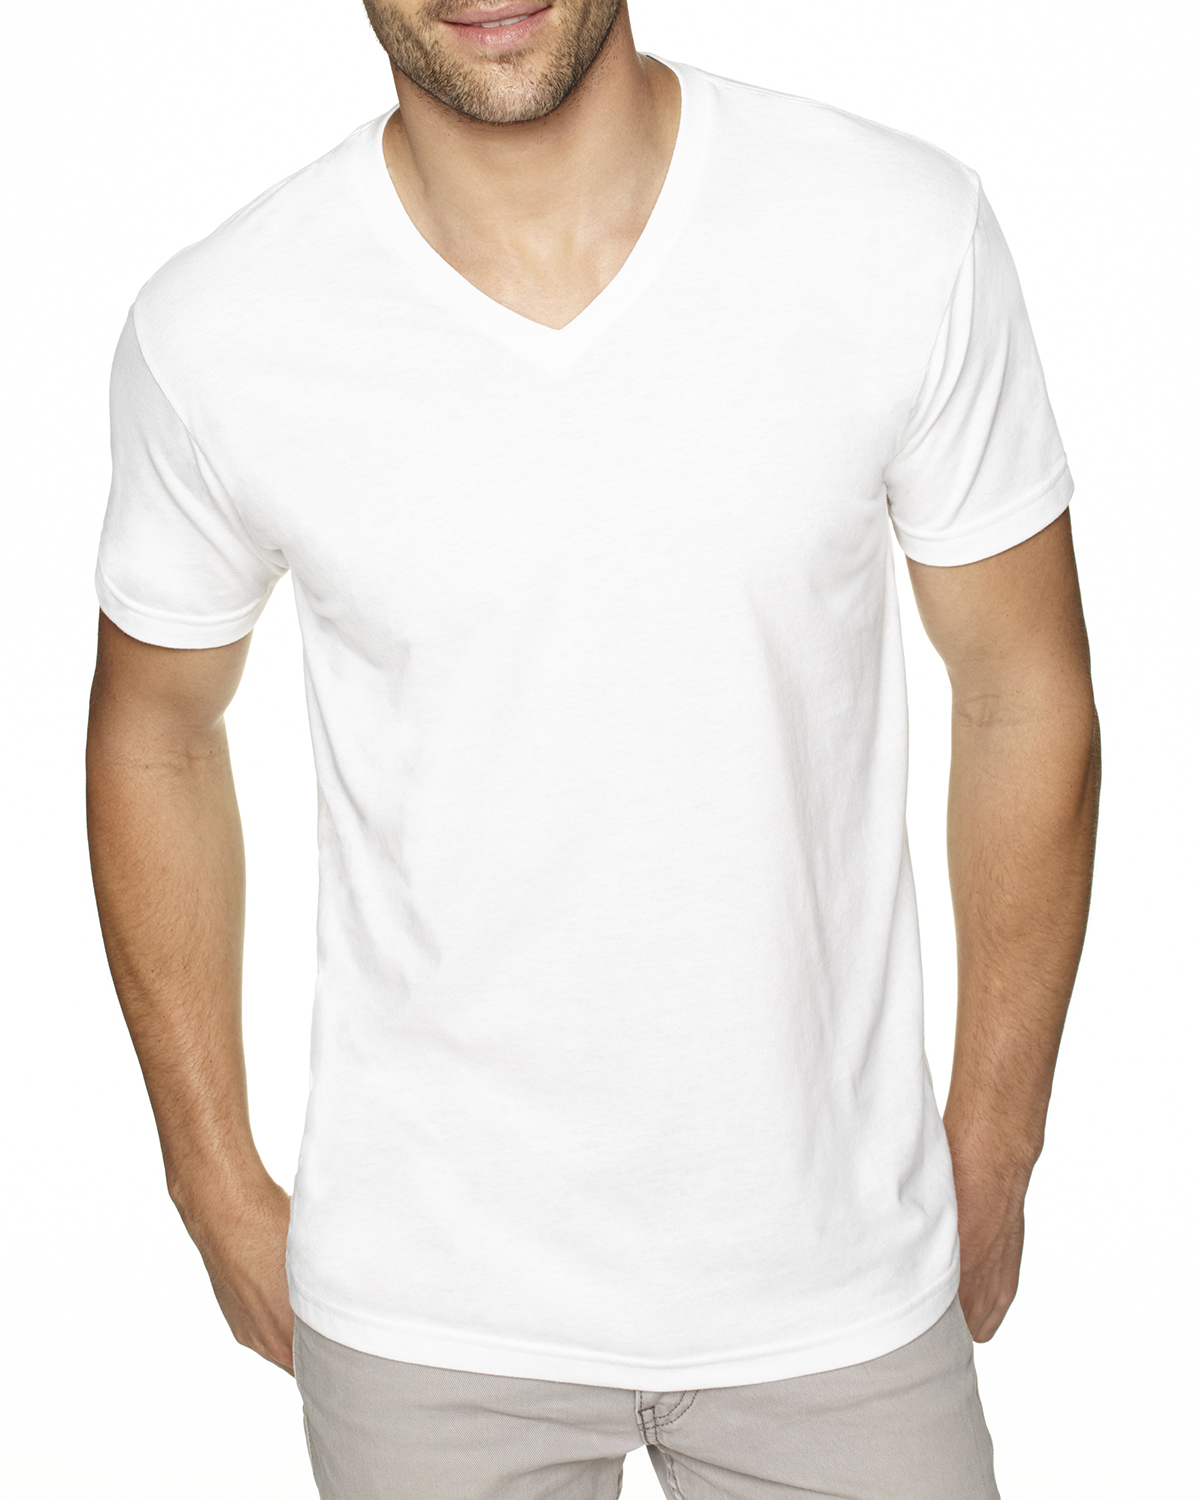 be1746313 'A picture of a Next Level Mens Premium Fitted Sueded V Neck Tee, ready. '